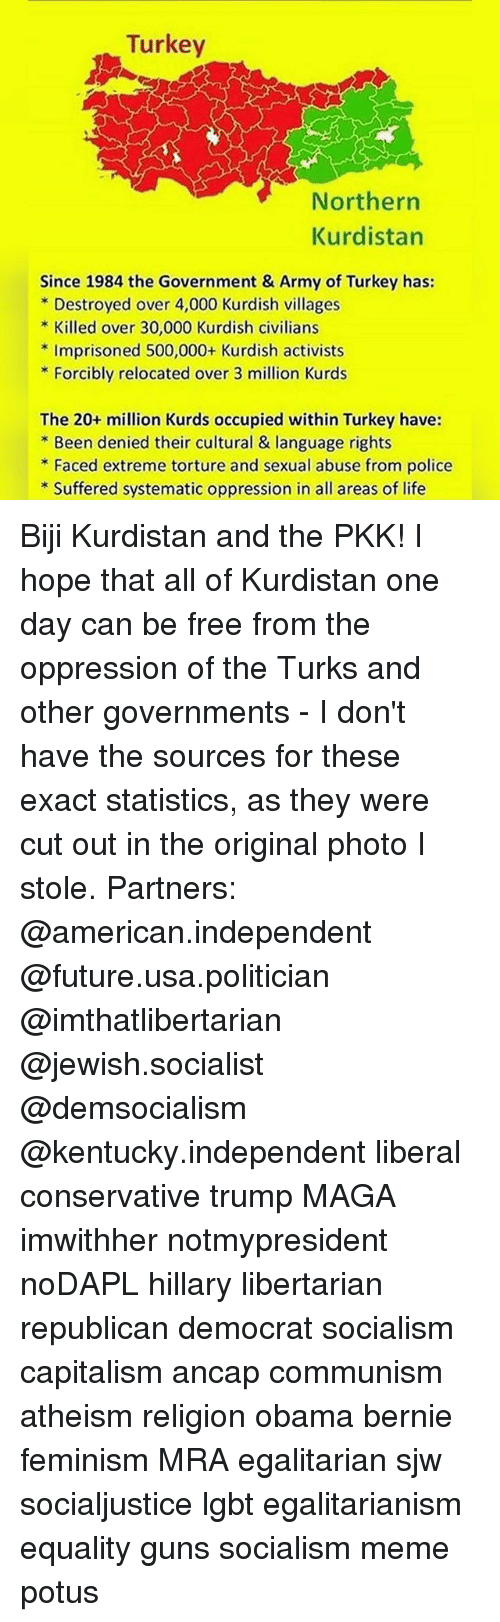 Feminism, Future, and Guns: Turkey  Northern  Kurdistan  Since 1984 the Government & Army of Turkey has:  Destroyed over 4,000 Kurdish villages  Killed over 30,000 Kurdish civilians  Imprisoned 500,000+ Kurdish activists  Forcibly relocated over 3 million Kurds  The 20+ million Kurds occupied within Turkey have:  Been denied their cultural & language rights  Faced extreme torture and sexual abuse from police  Suffered systematic oppression in all areas of life Biji Kurdistan and the PKK! I hope that all of Kurdistan one day can be free from the oppression of the Turks and other governments - I don't have the sources for these exact statistics, as they were cut out in the original photo I stole. Partners: @american.independent @future.usa.politician @imthatlibertarian @jewish.socialist @demsocialism @kentucky.independent liberal conservative trump MAGA imwithher notmypresident noDAPL hillary libertarian republican democrat socialism capitalism ancap communism atheism religion obama bernie feminism MRA egalitarian sjw socialjustice lgbt egalitarianism equality guns socialism meme potus